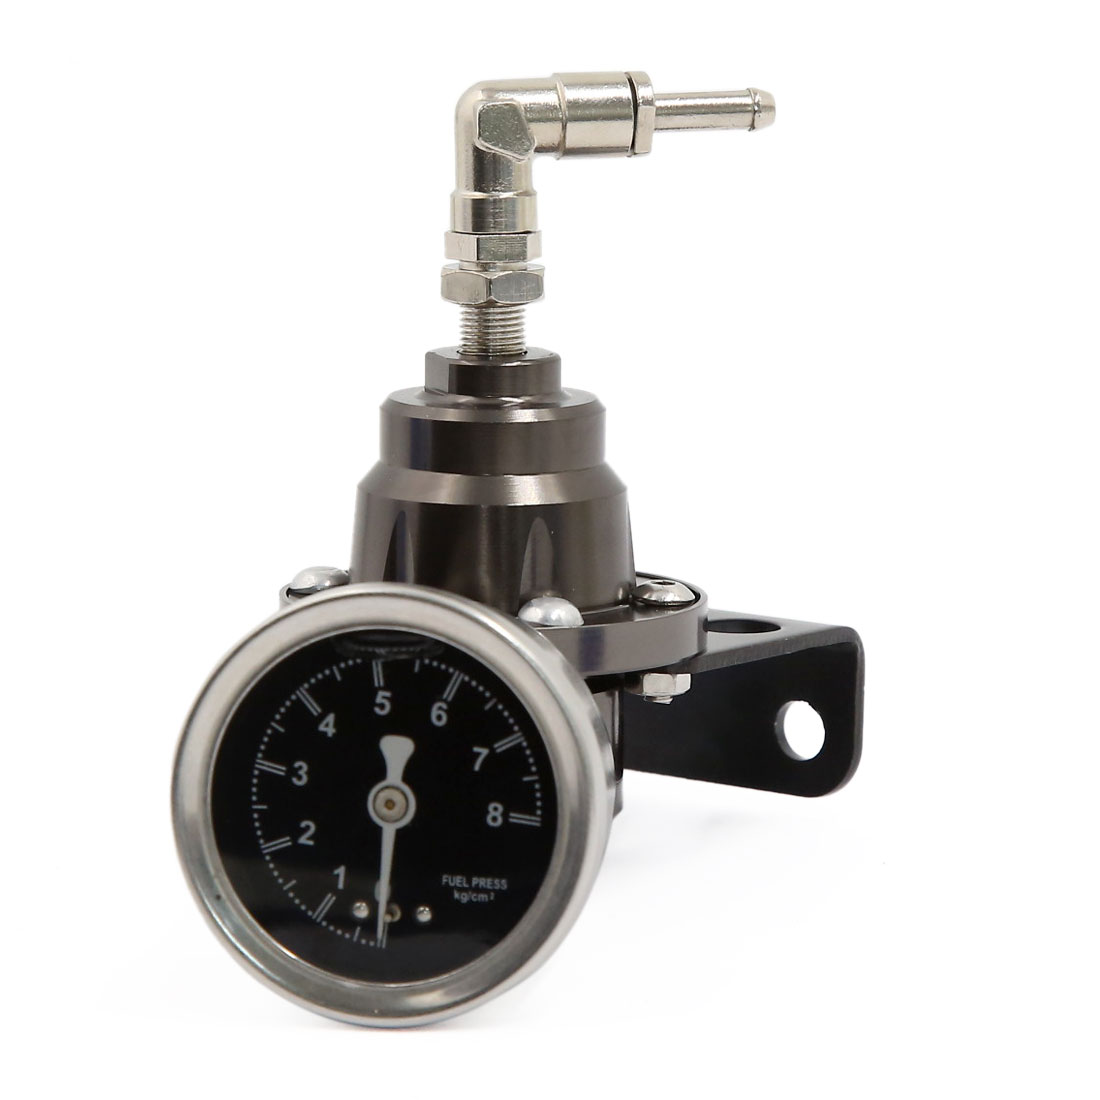 Titanium Tone Aluminum Alloy Adjustable Fuel Pressure Regulator Oil Gauge Kit